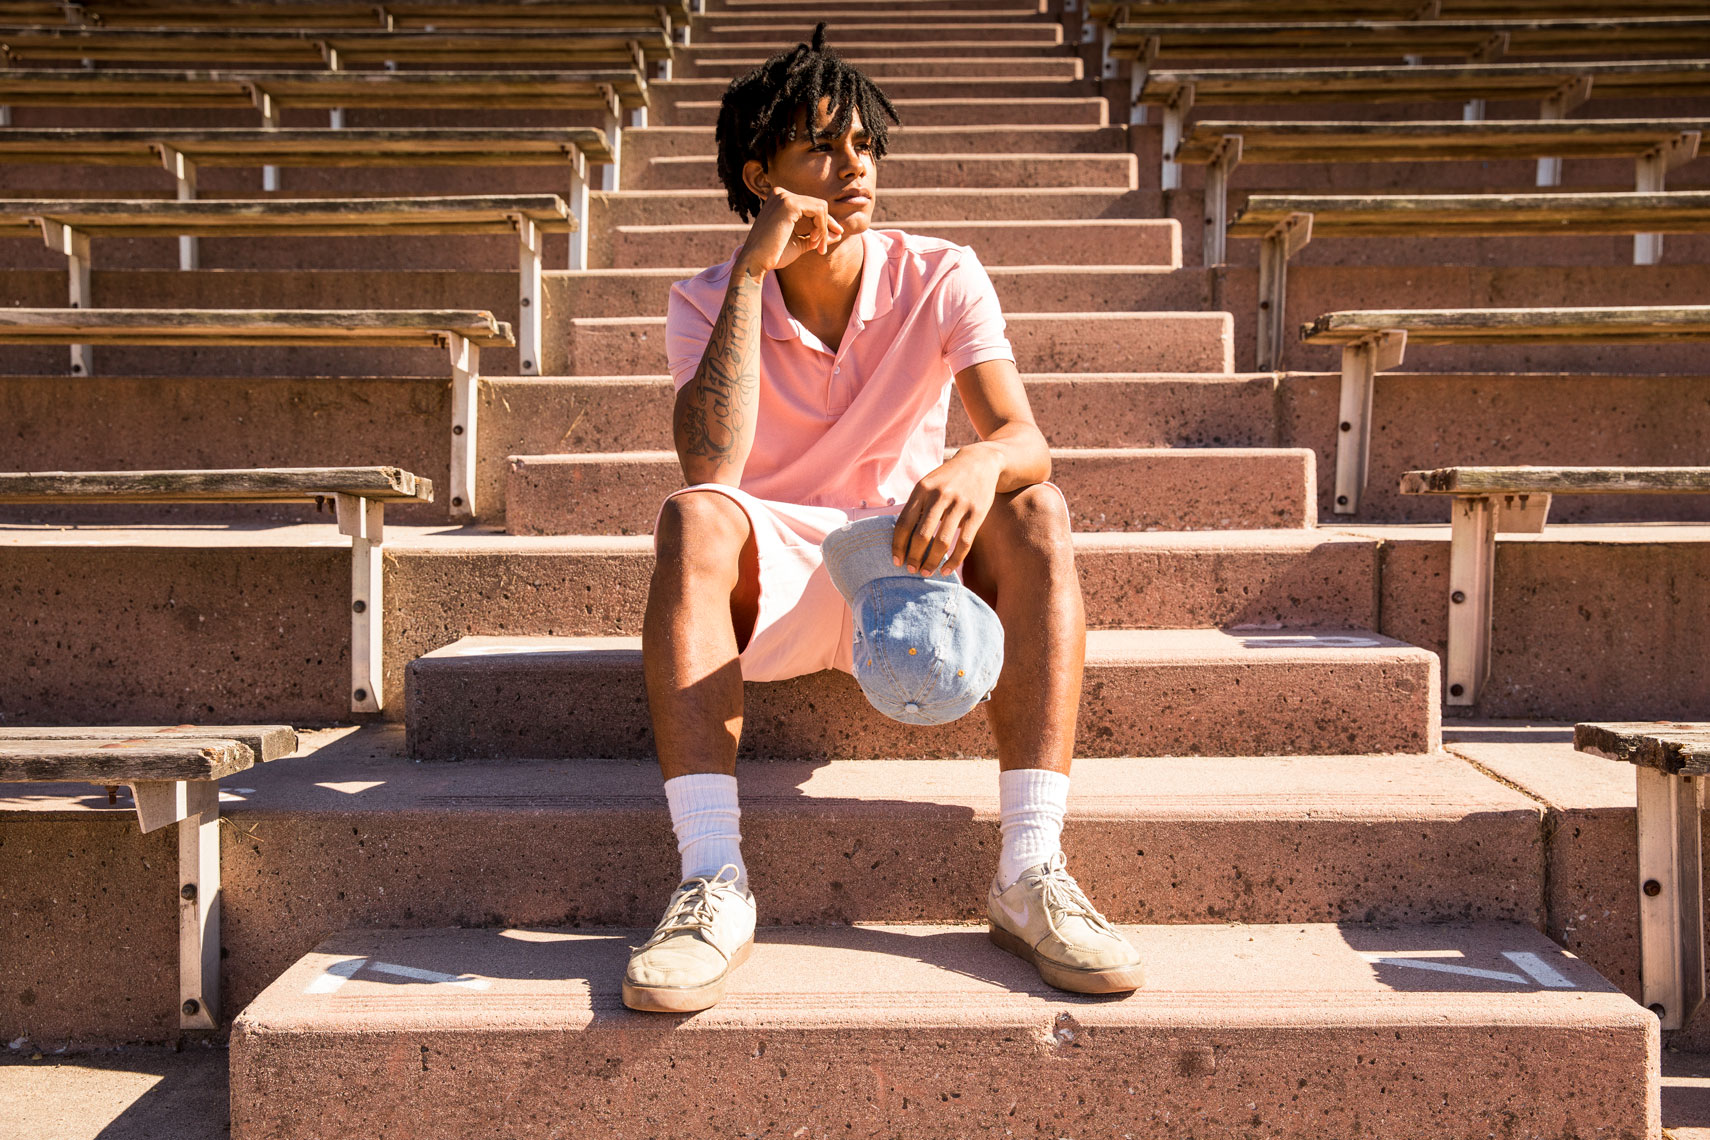 Portrait of man wearing pink sitting on stadium steps